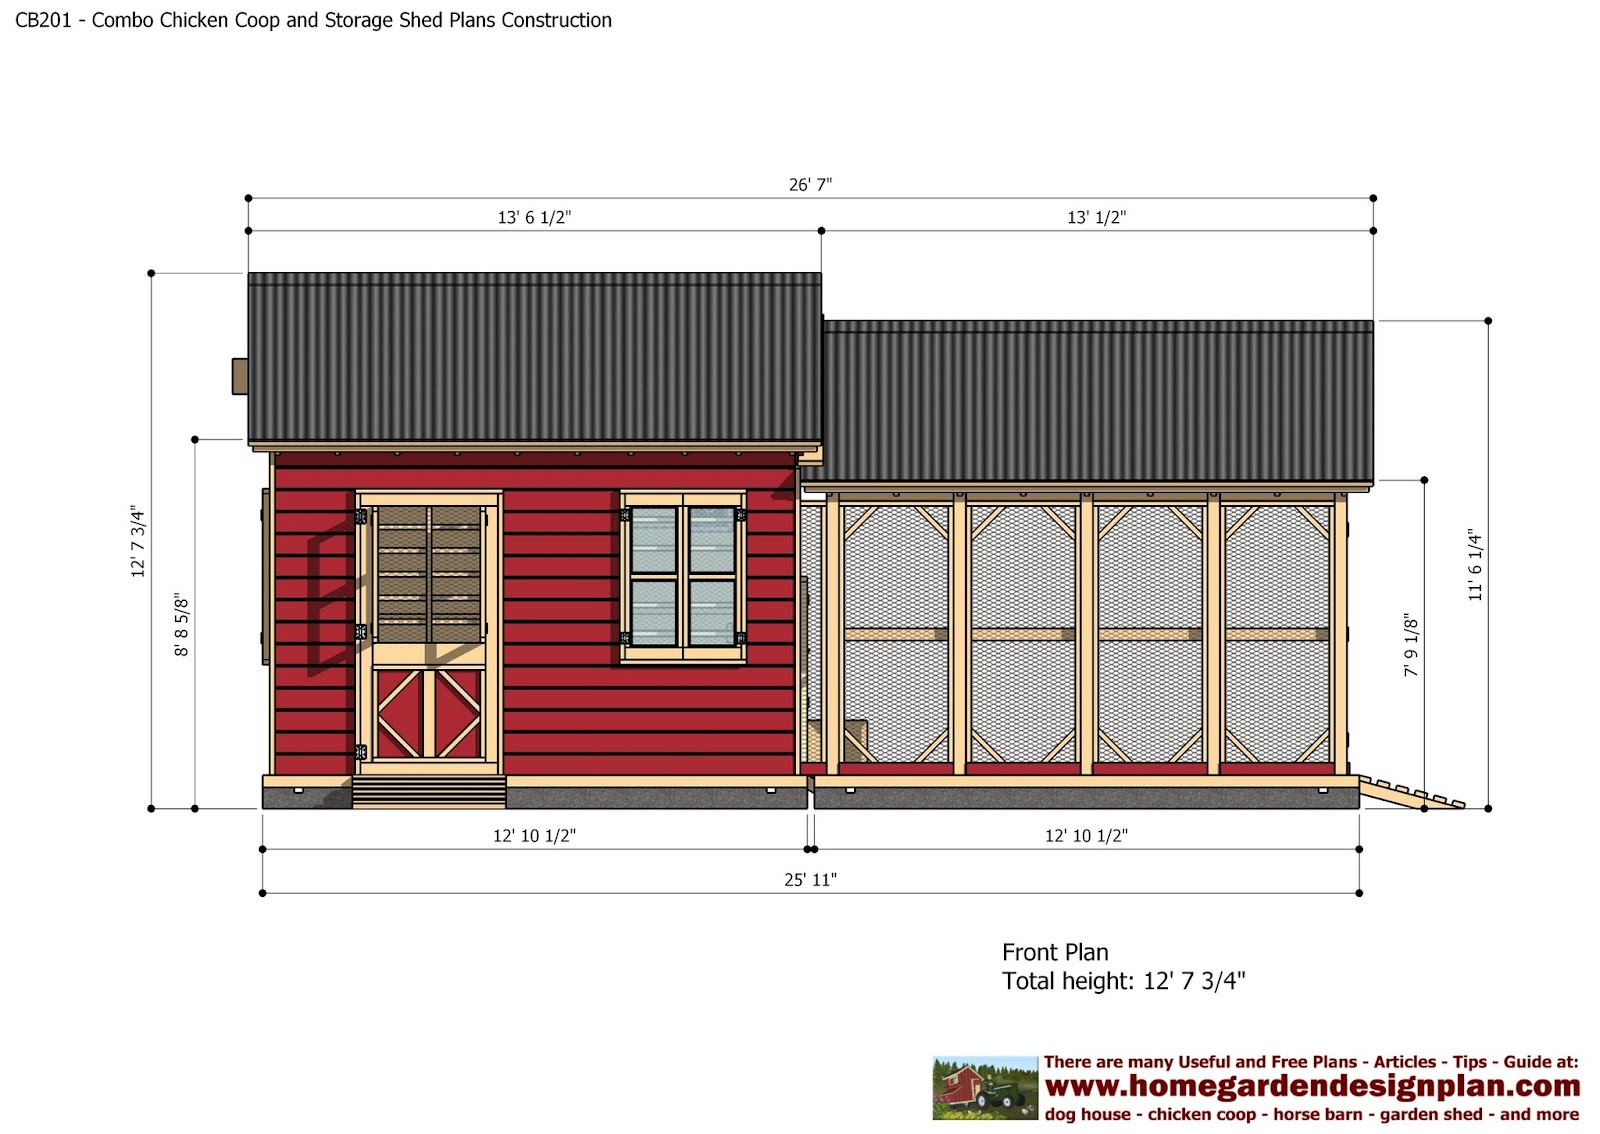 Home garden plans cb201 combo plans chicken coop for Outdoor storage shed plans